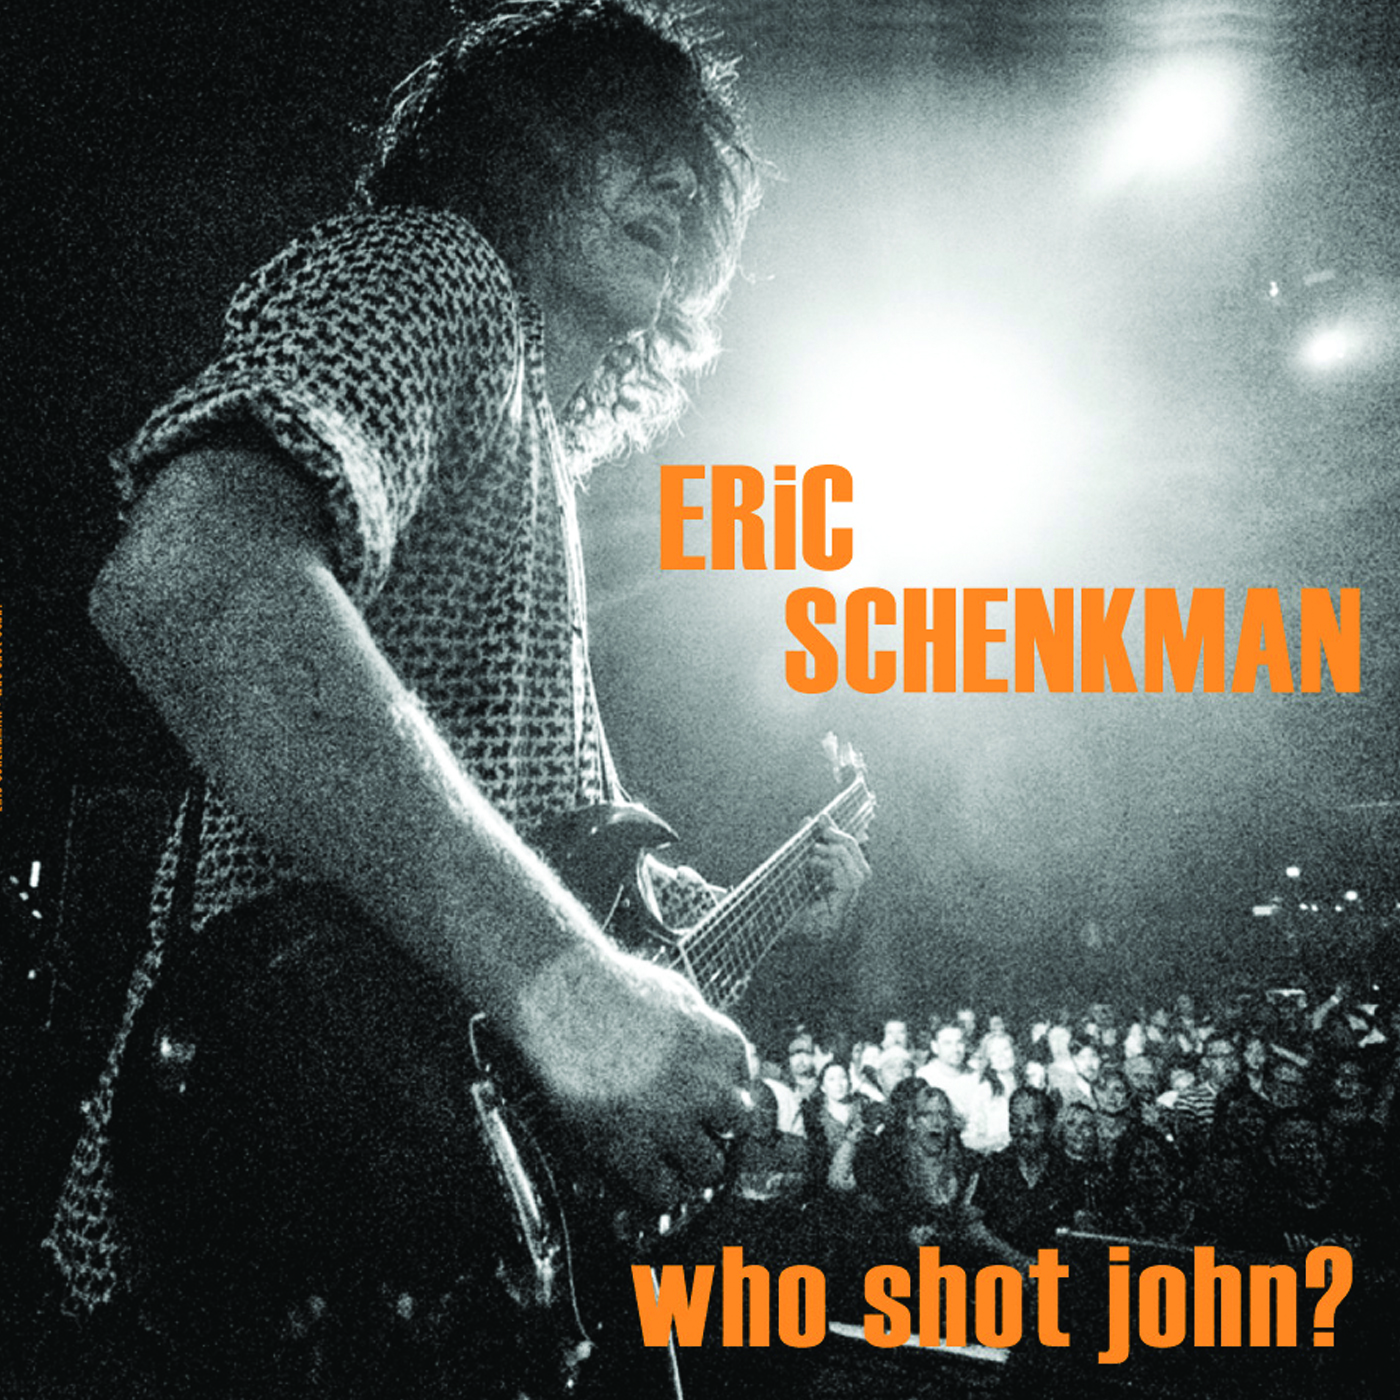 Album art for Eric Schenkman's forthcoming third solo studio album 'Who Shot John?'